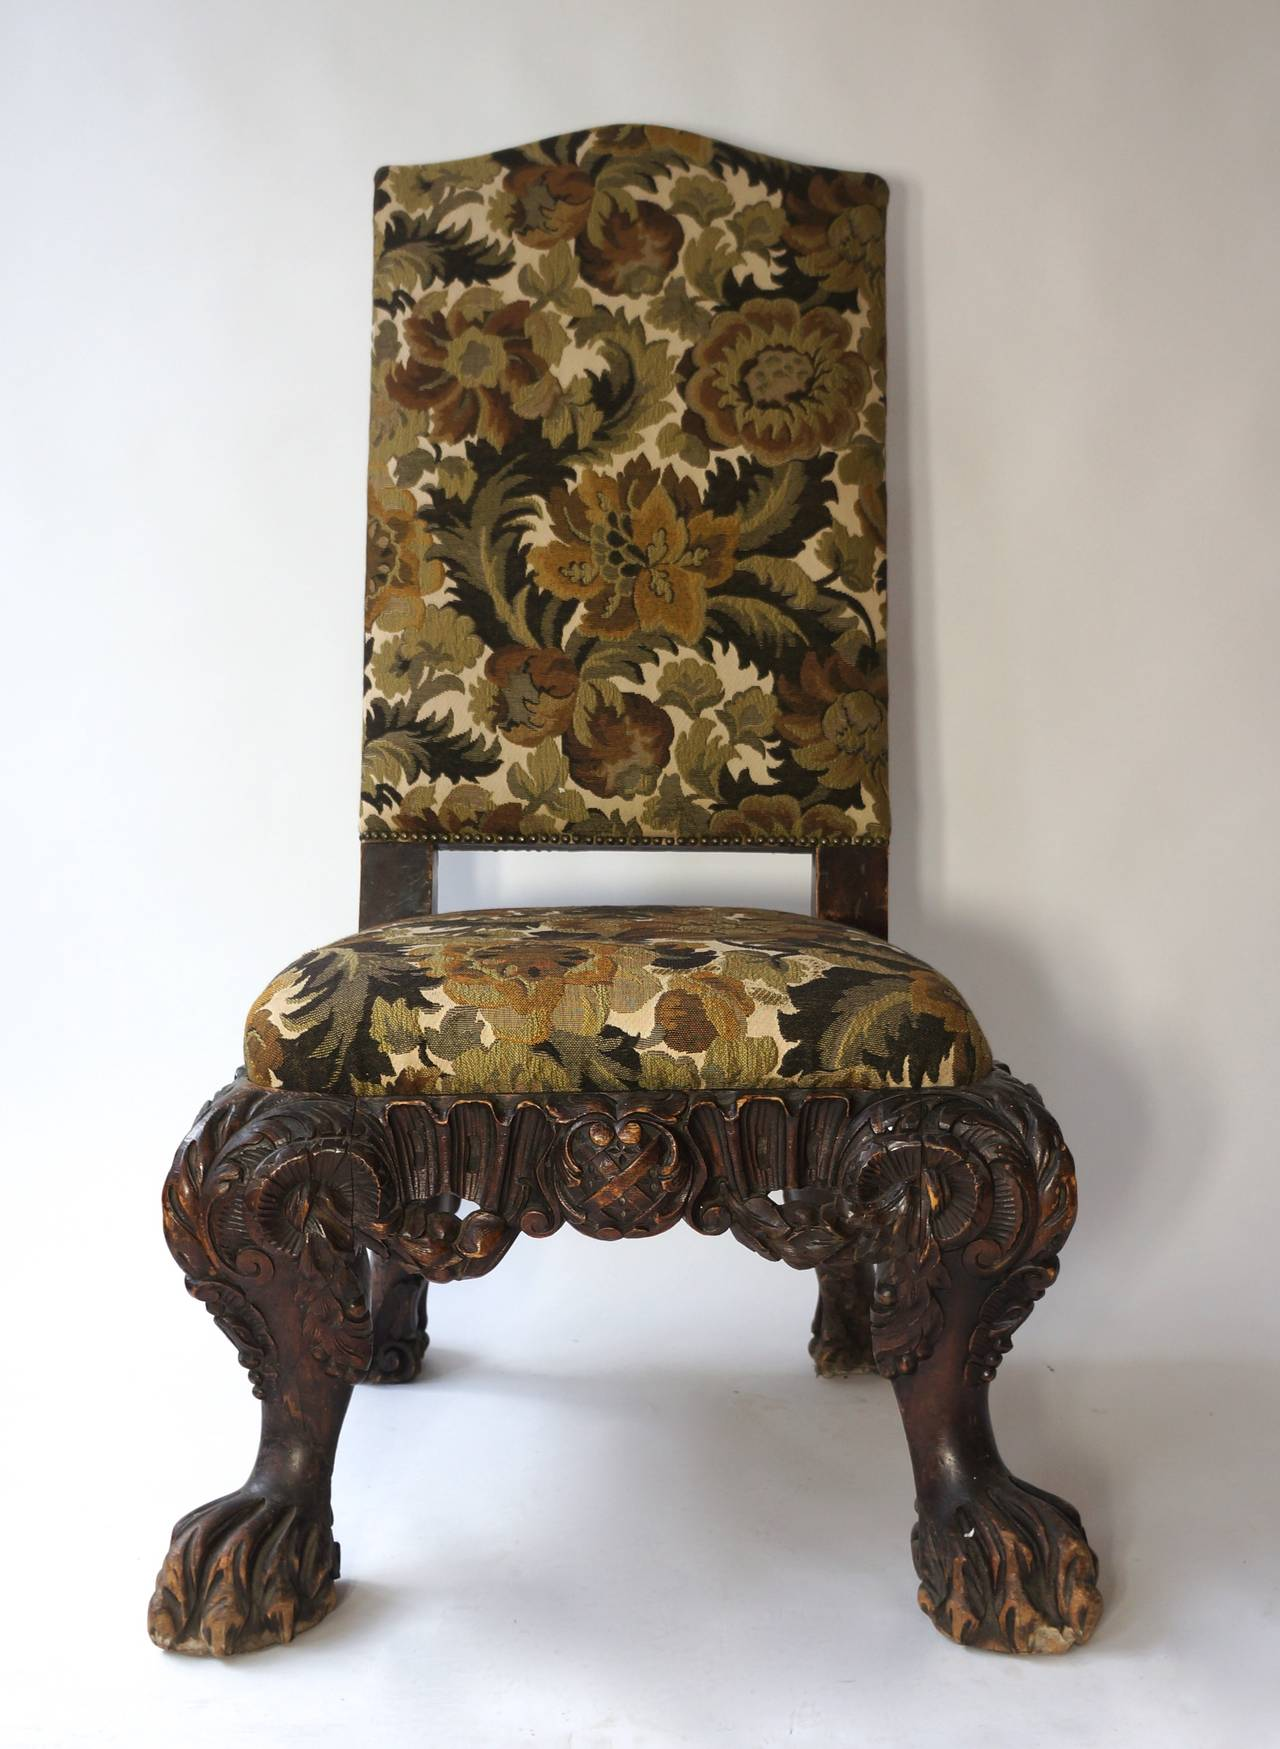 Baroque Italian Barok Style Chair, Second Half of the 19th Century For Sale